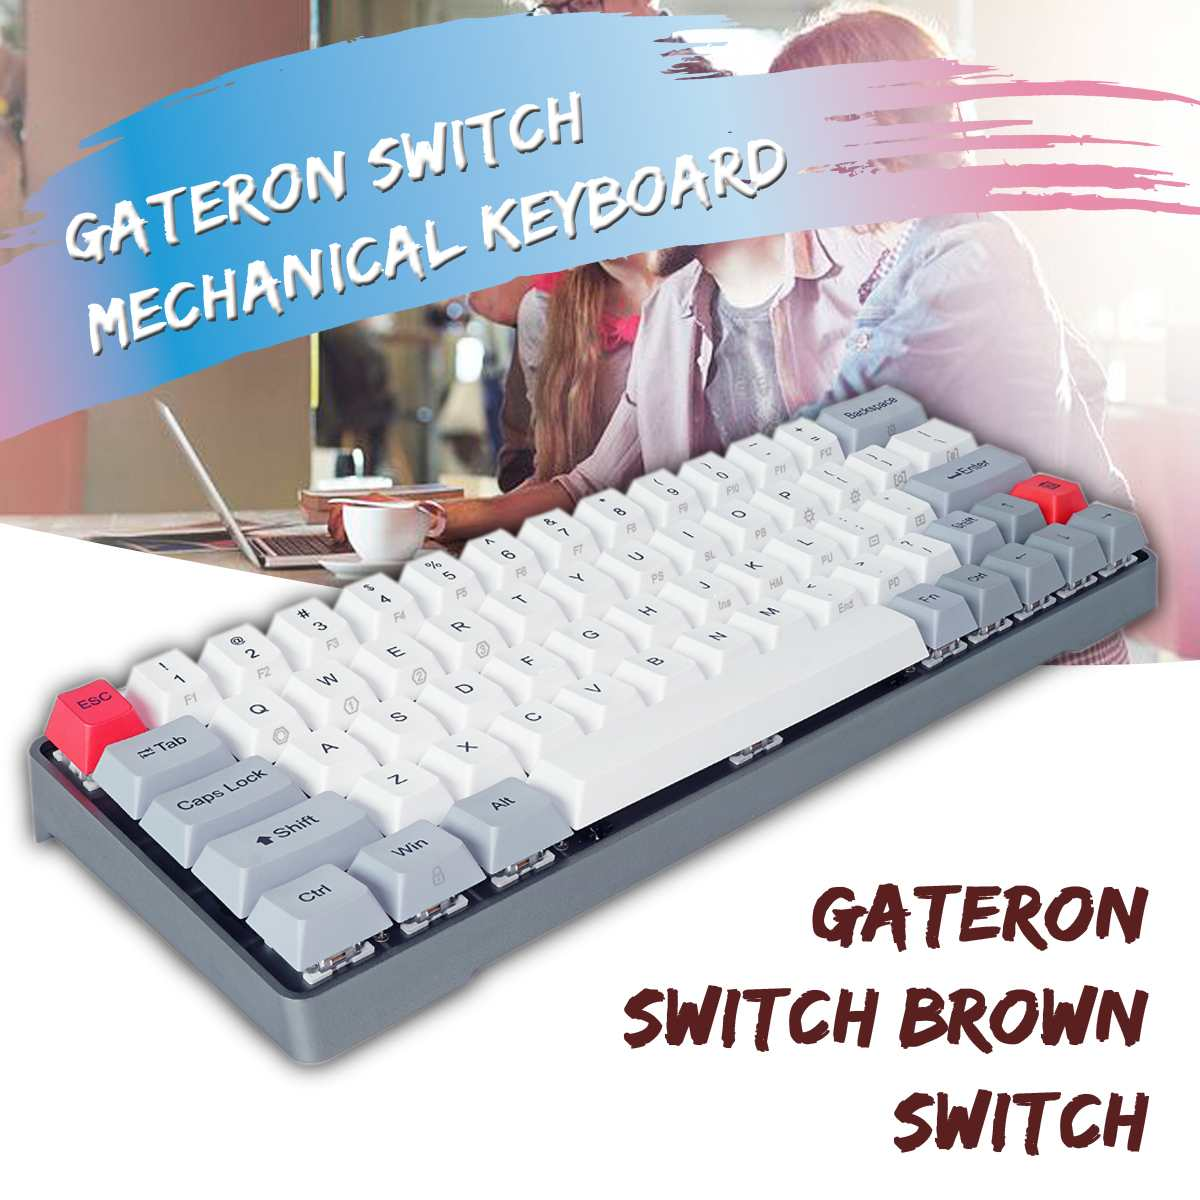 Cheap and beautiful product gk64 mechanical keyboard in BNS Store